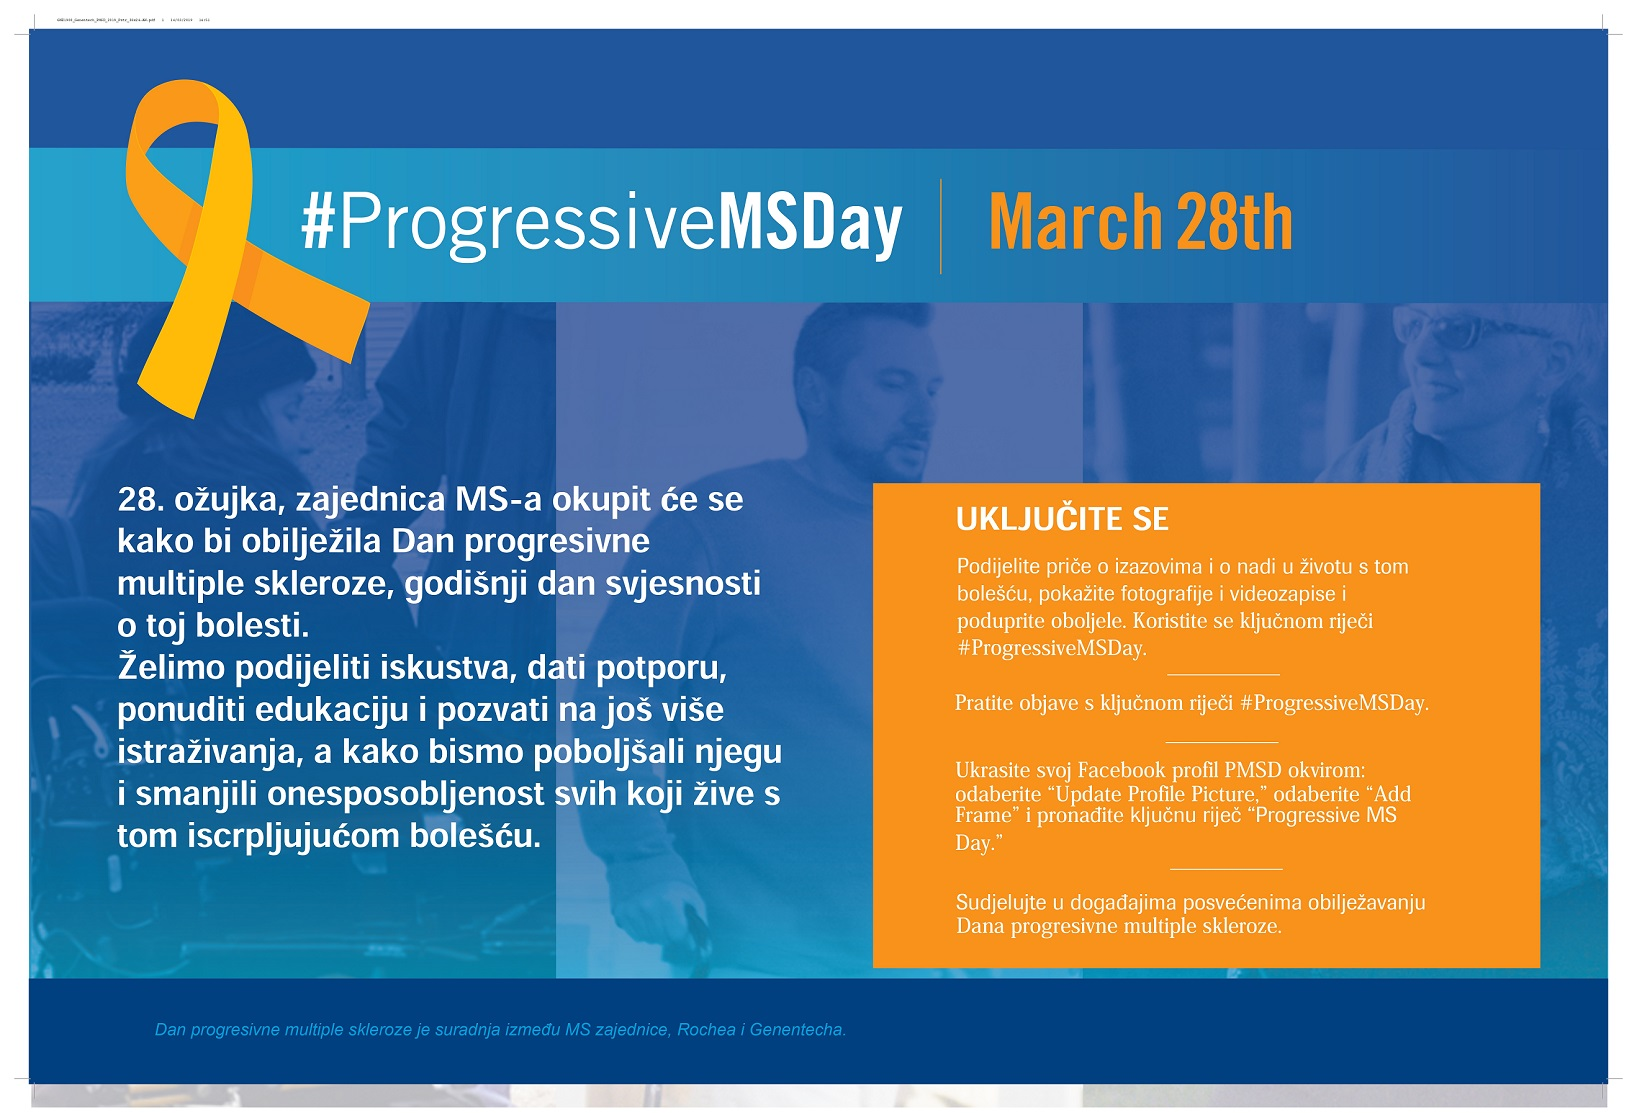 #ProgressiiveMSday